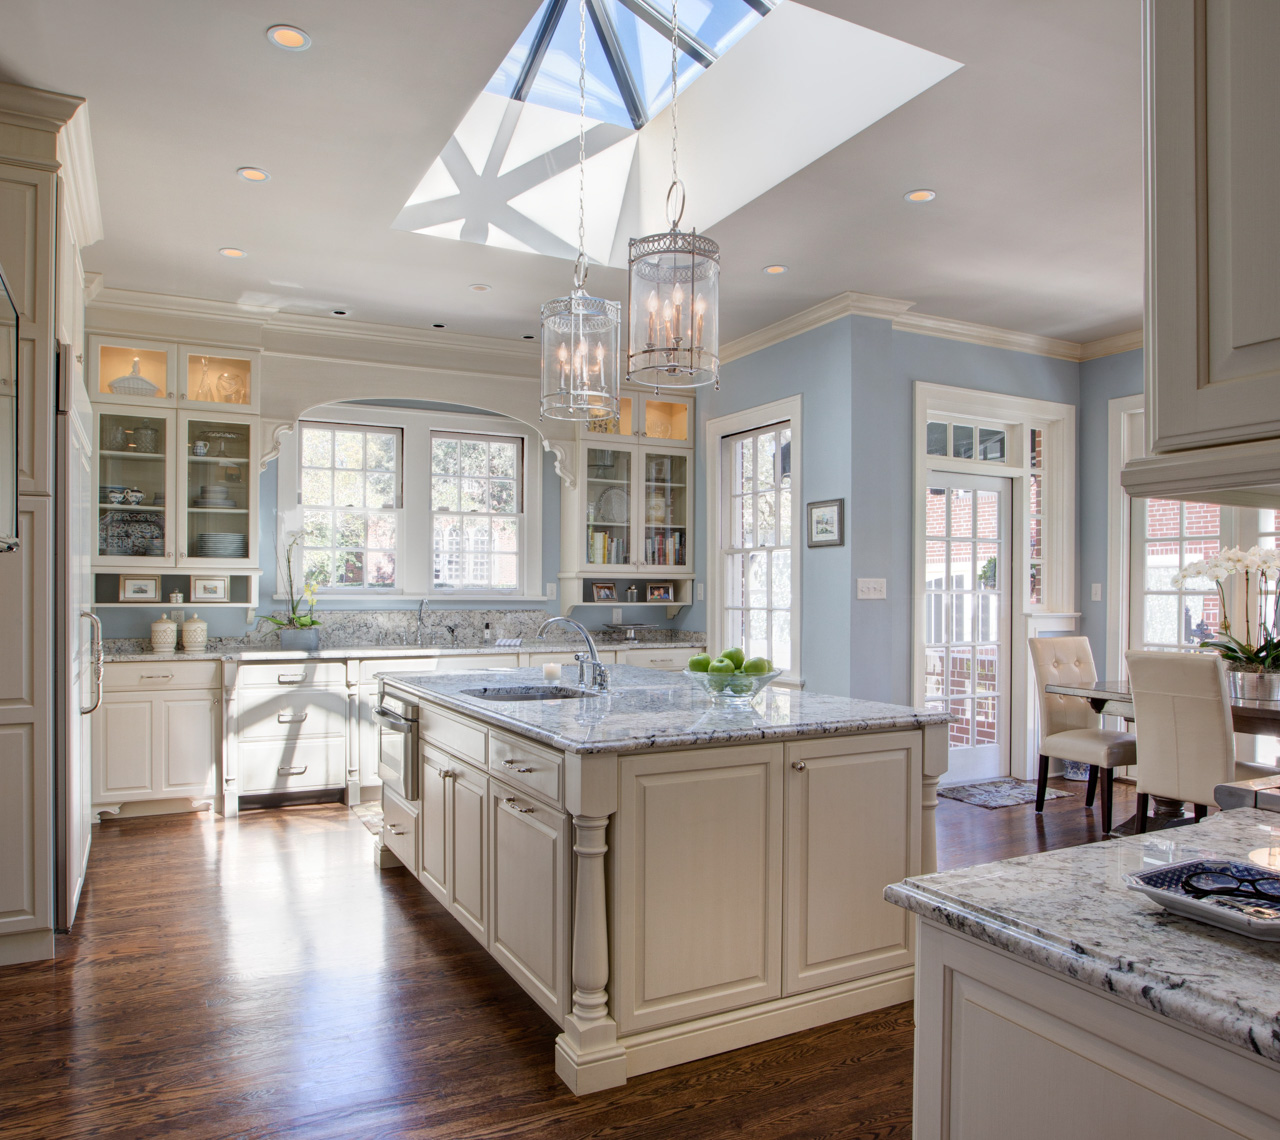 20140228 Gibson Residence-Kitchen2